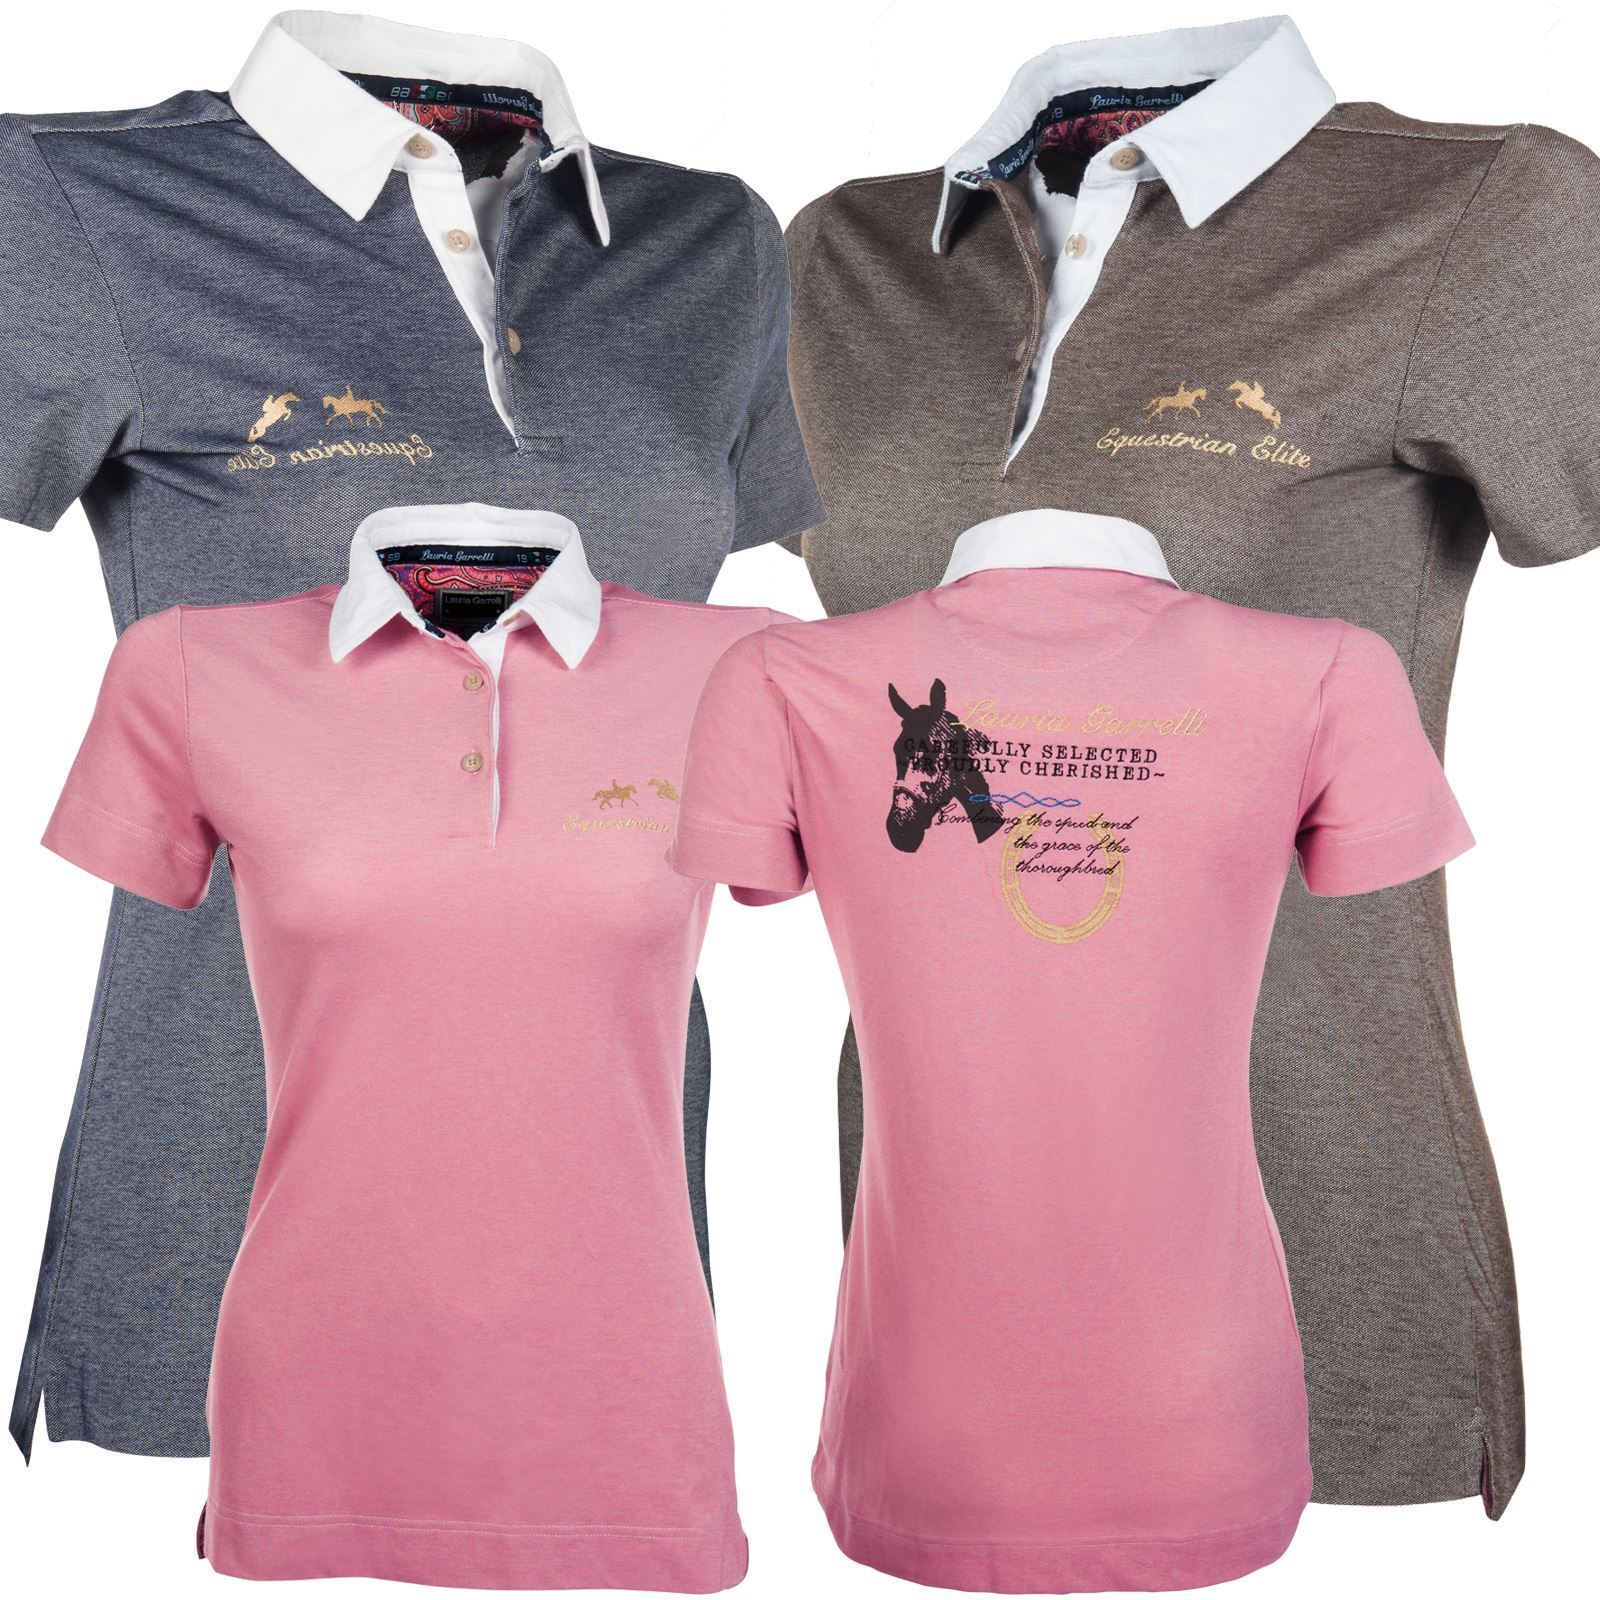 Lauria Garelli Breathable  Comfortable Tailored Ladies Womans Queens Polo Shirt  deals sale